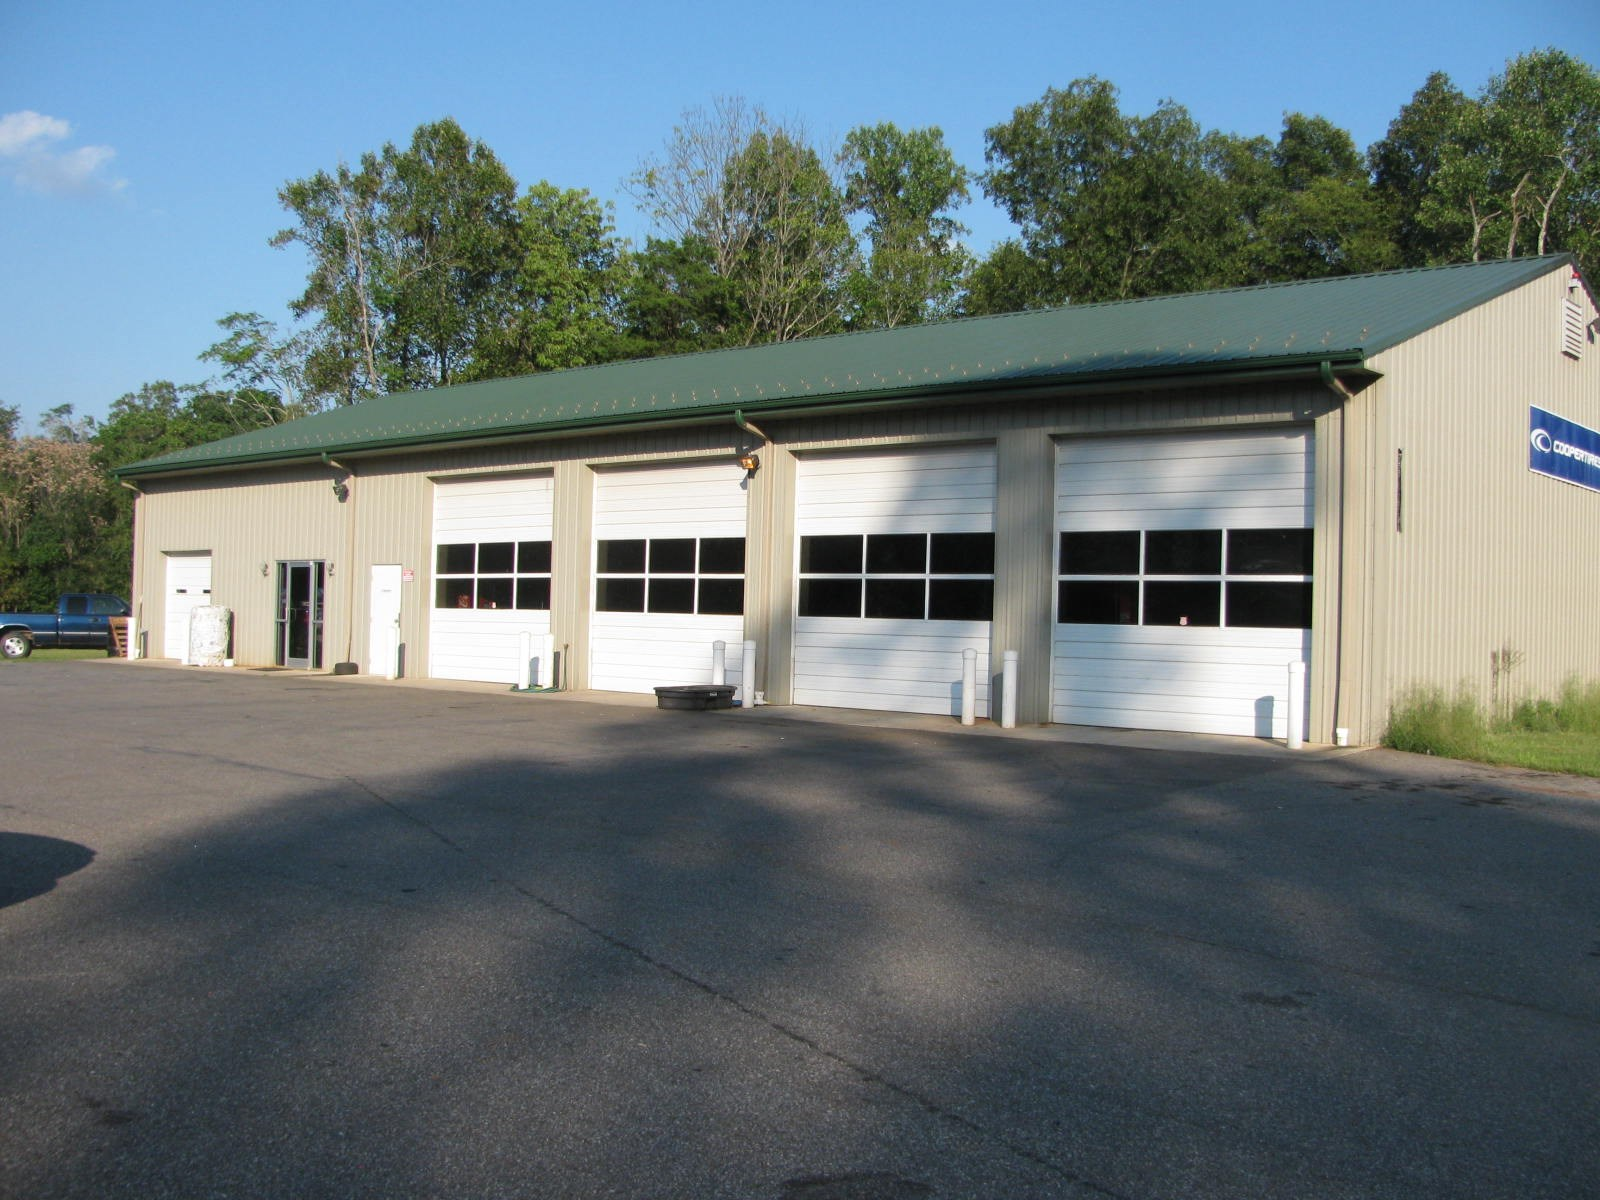 Tire & Auto Service Business In Pittsylvania County, VA